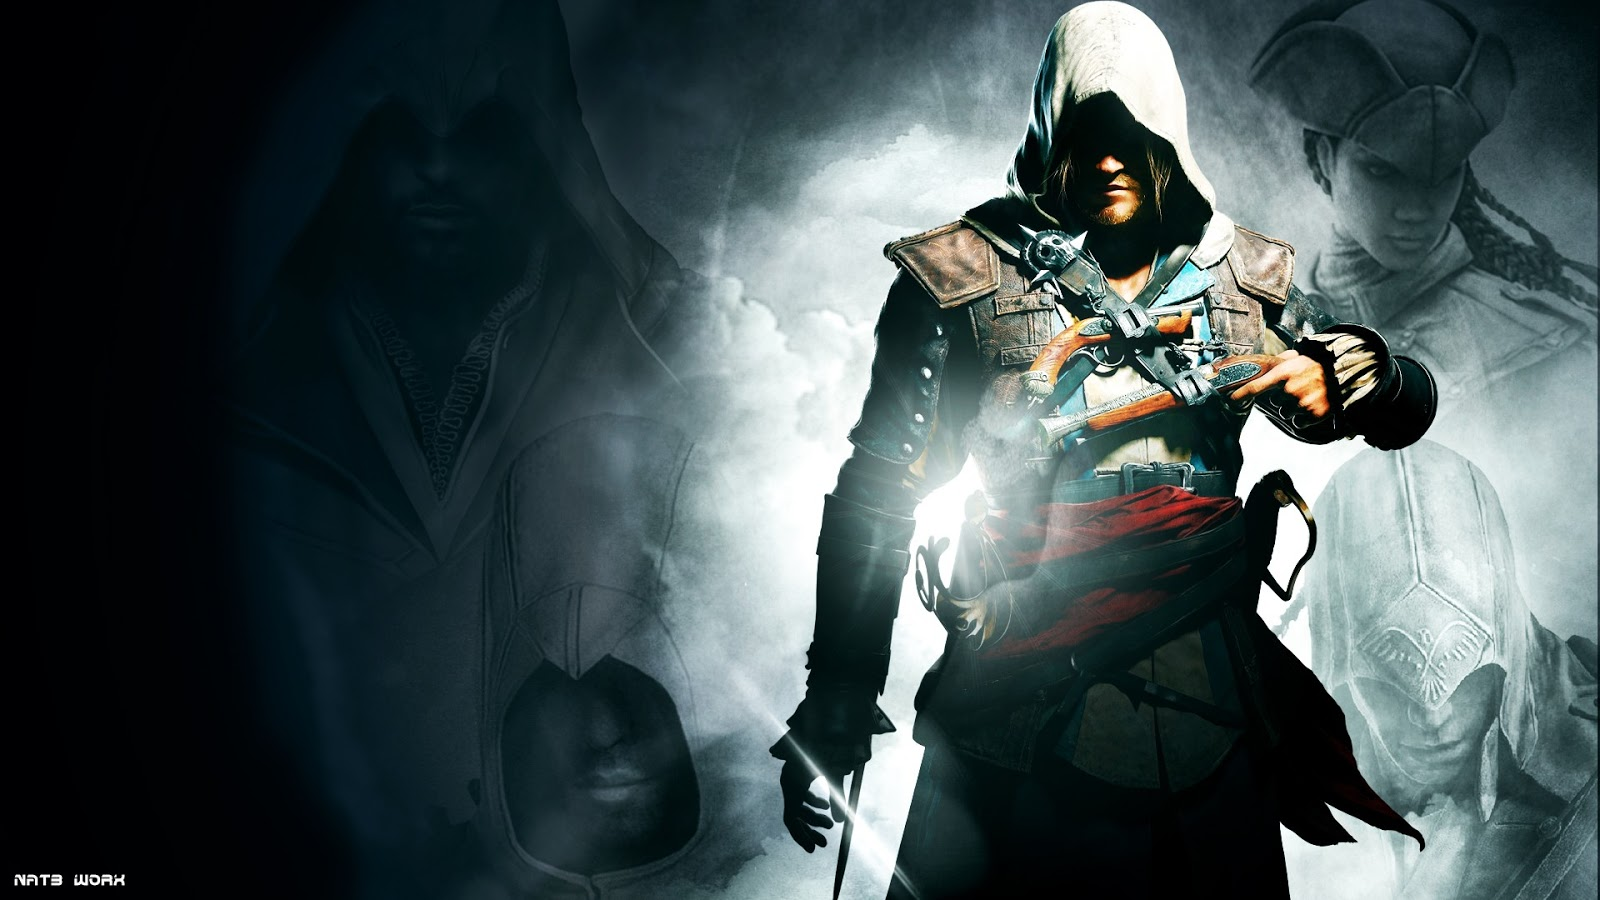 http://2.bp.blogspot.com/-voQzTLCP1mc/UTzV3xRemiI/AAAAAAAANEc/qdhFRMklG2s/s1600/assassins_creed_iv-wallpapers_hd+(6).jpg